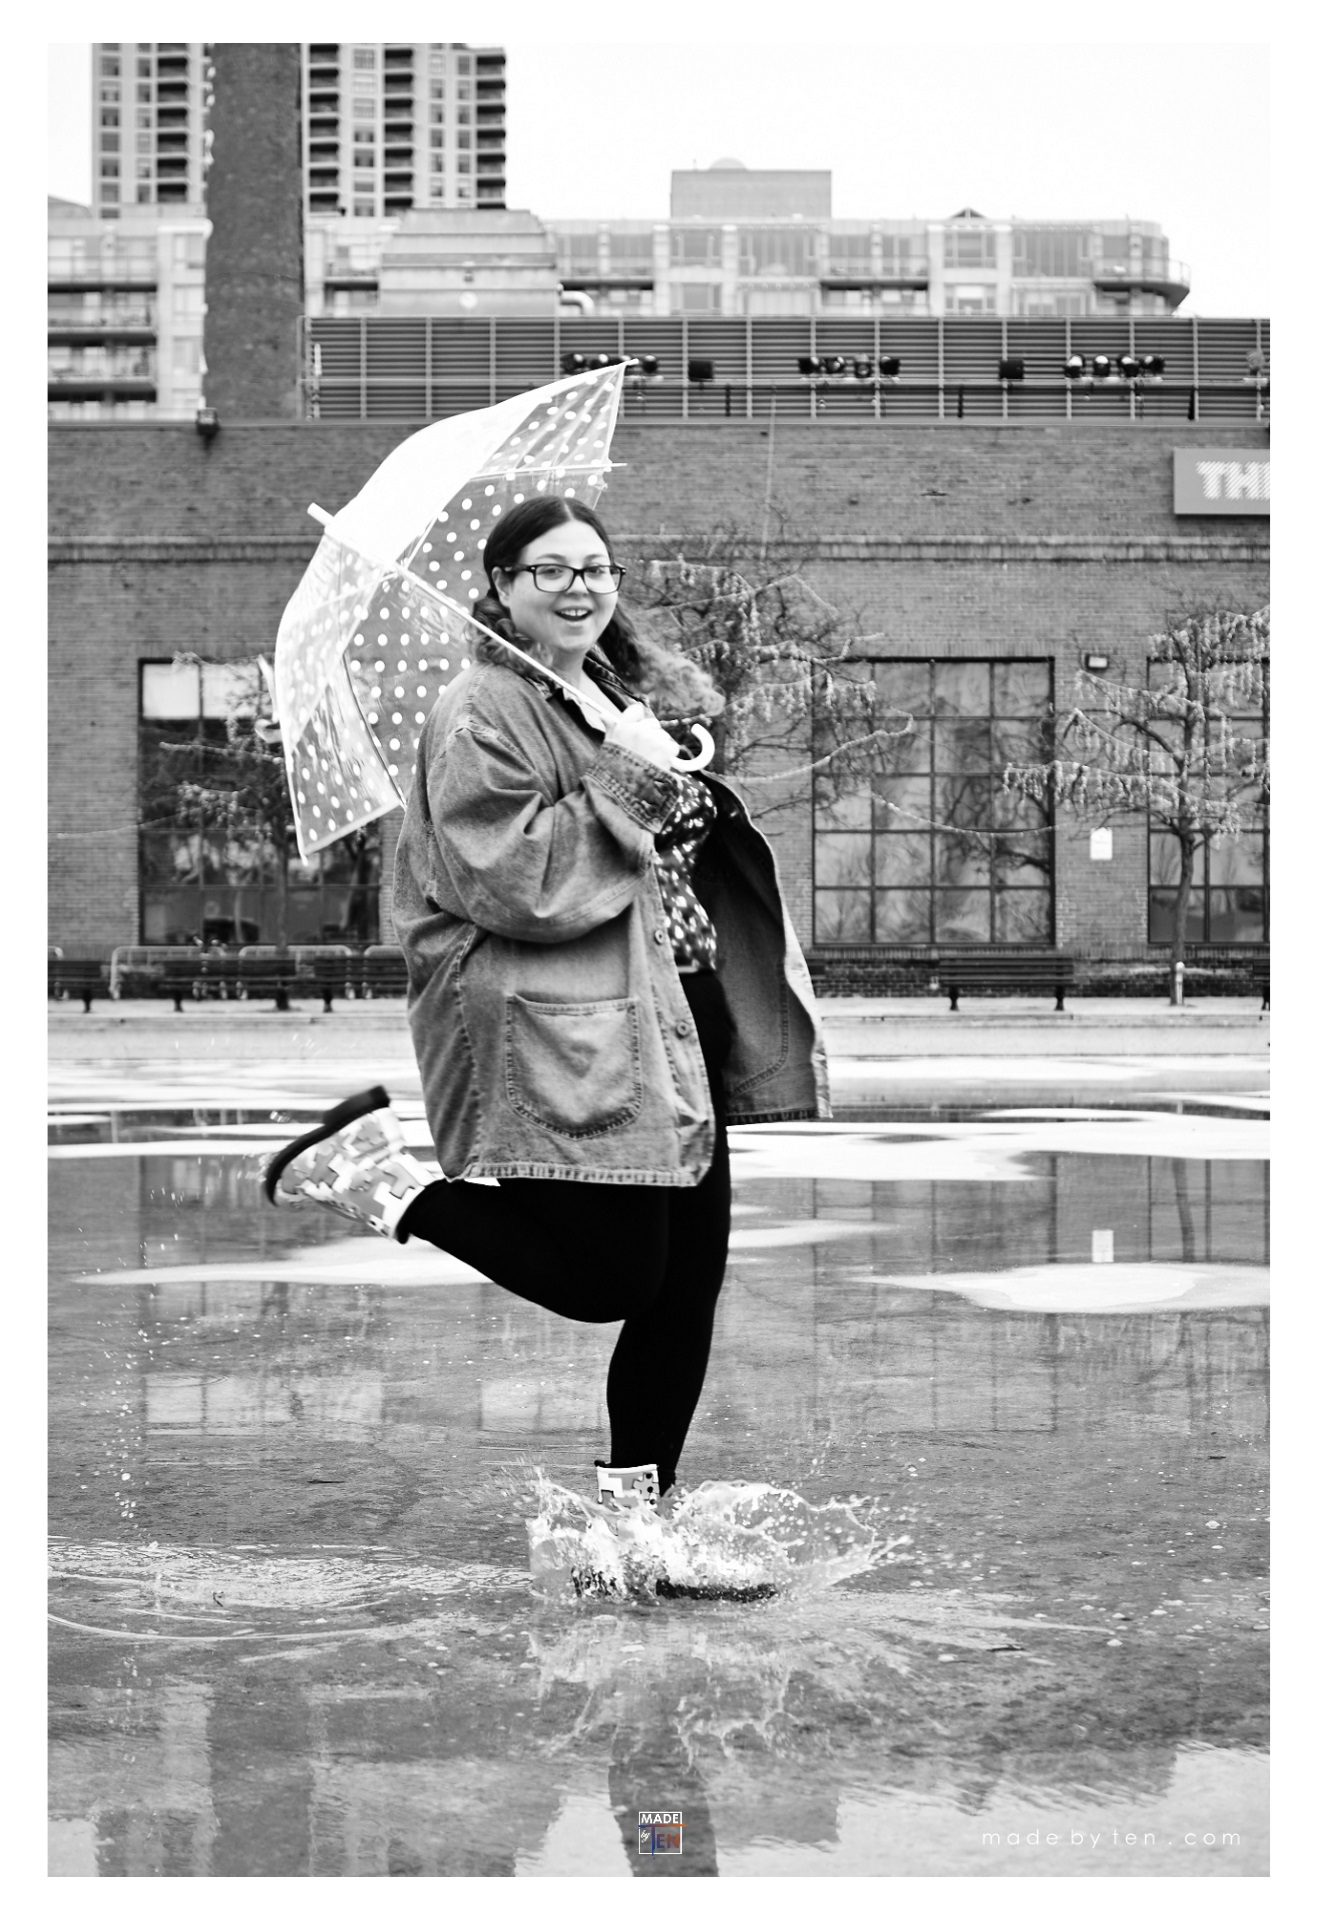 Woman Rain Puddle Splash - GTA Women Lifestyle Photography